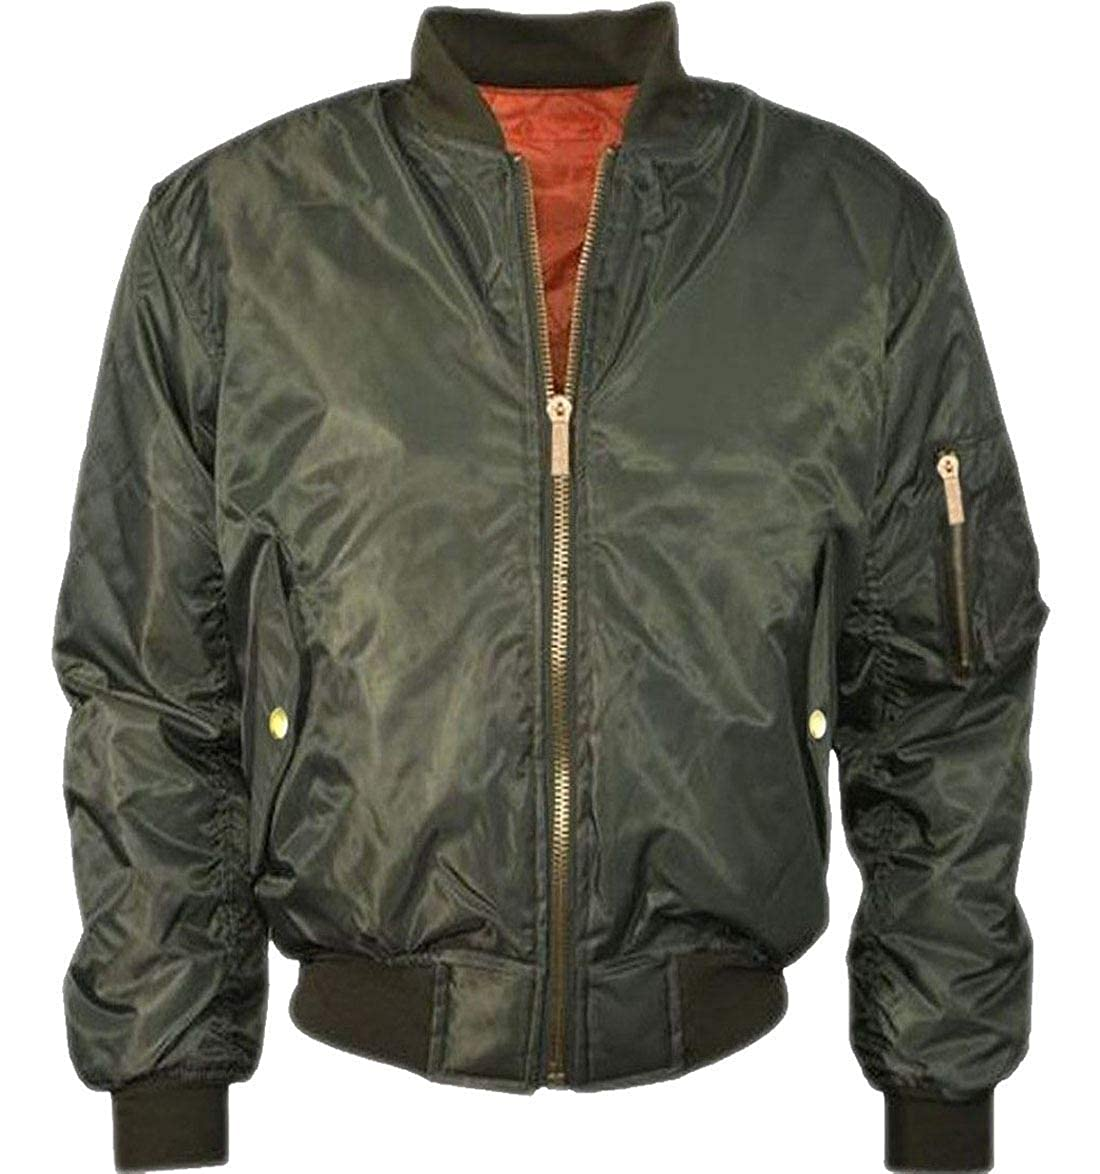 Amazon.com: Men Pilot Zip Up Biker Bomber Jacket Boy ...